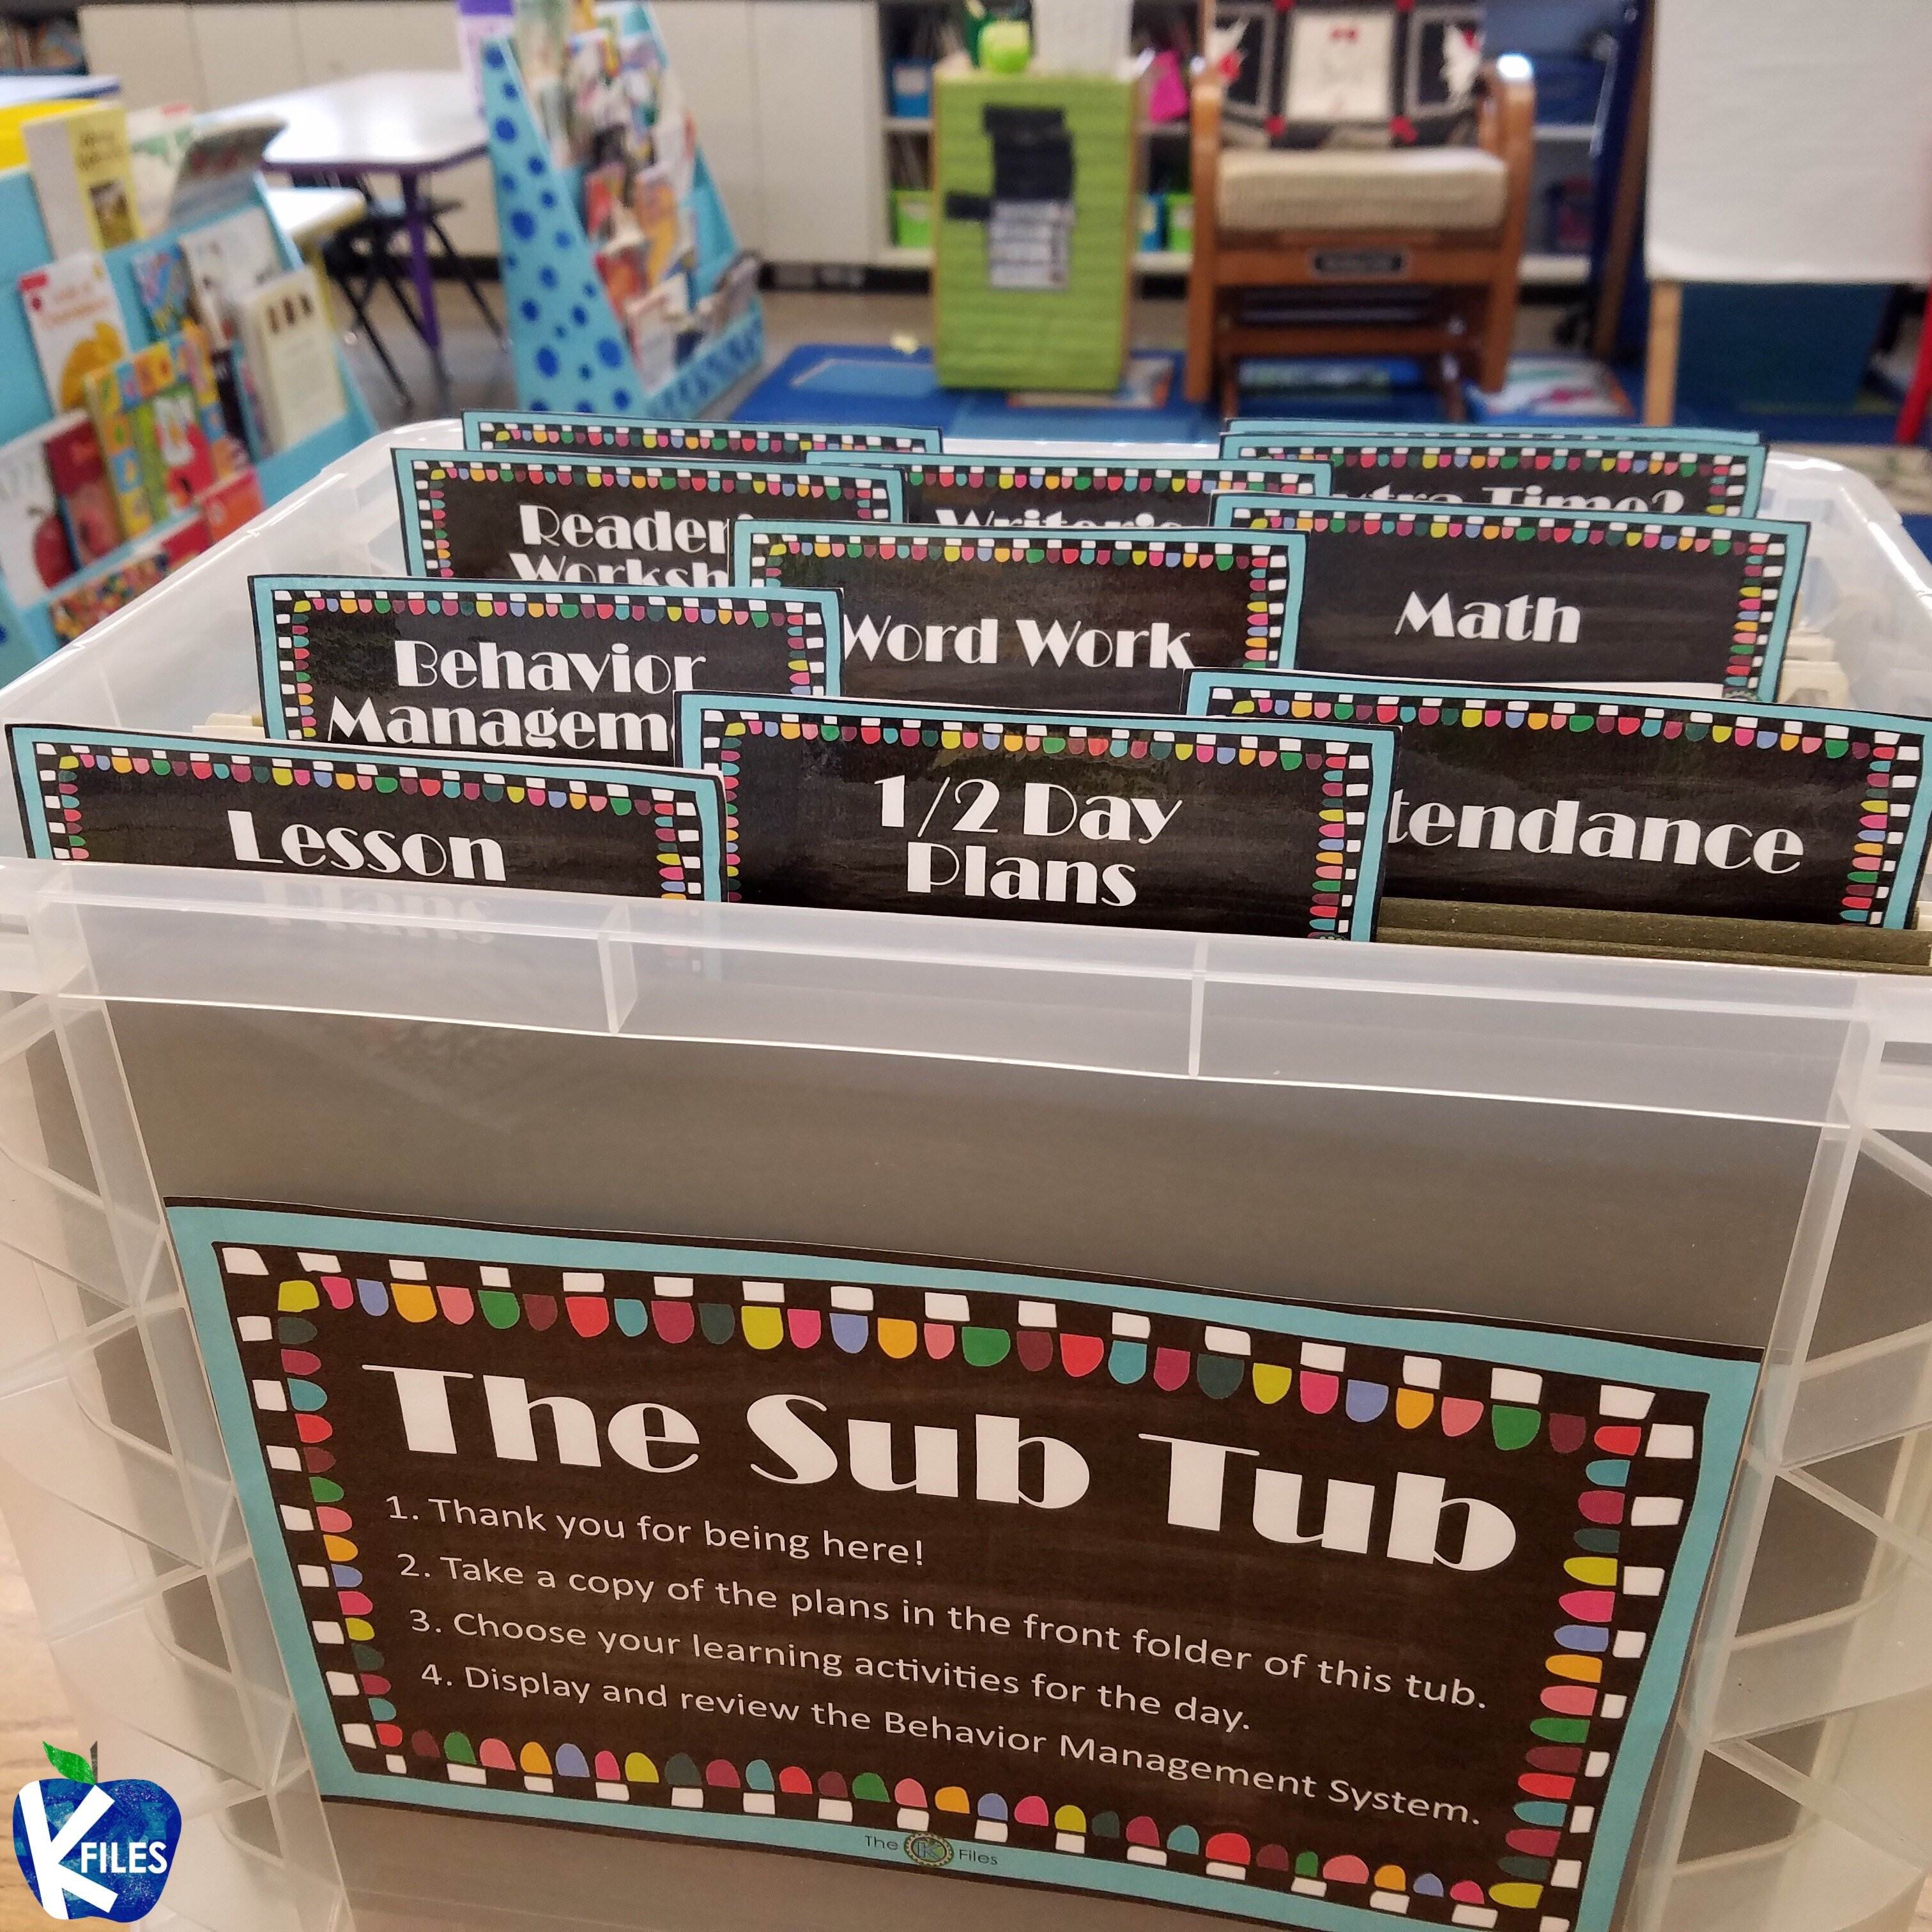 The Sub Tub: A Must Have for Alleviating Stress When Calling in Sick!